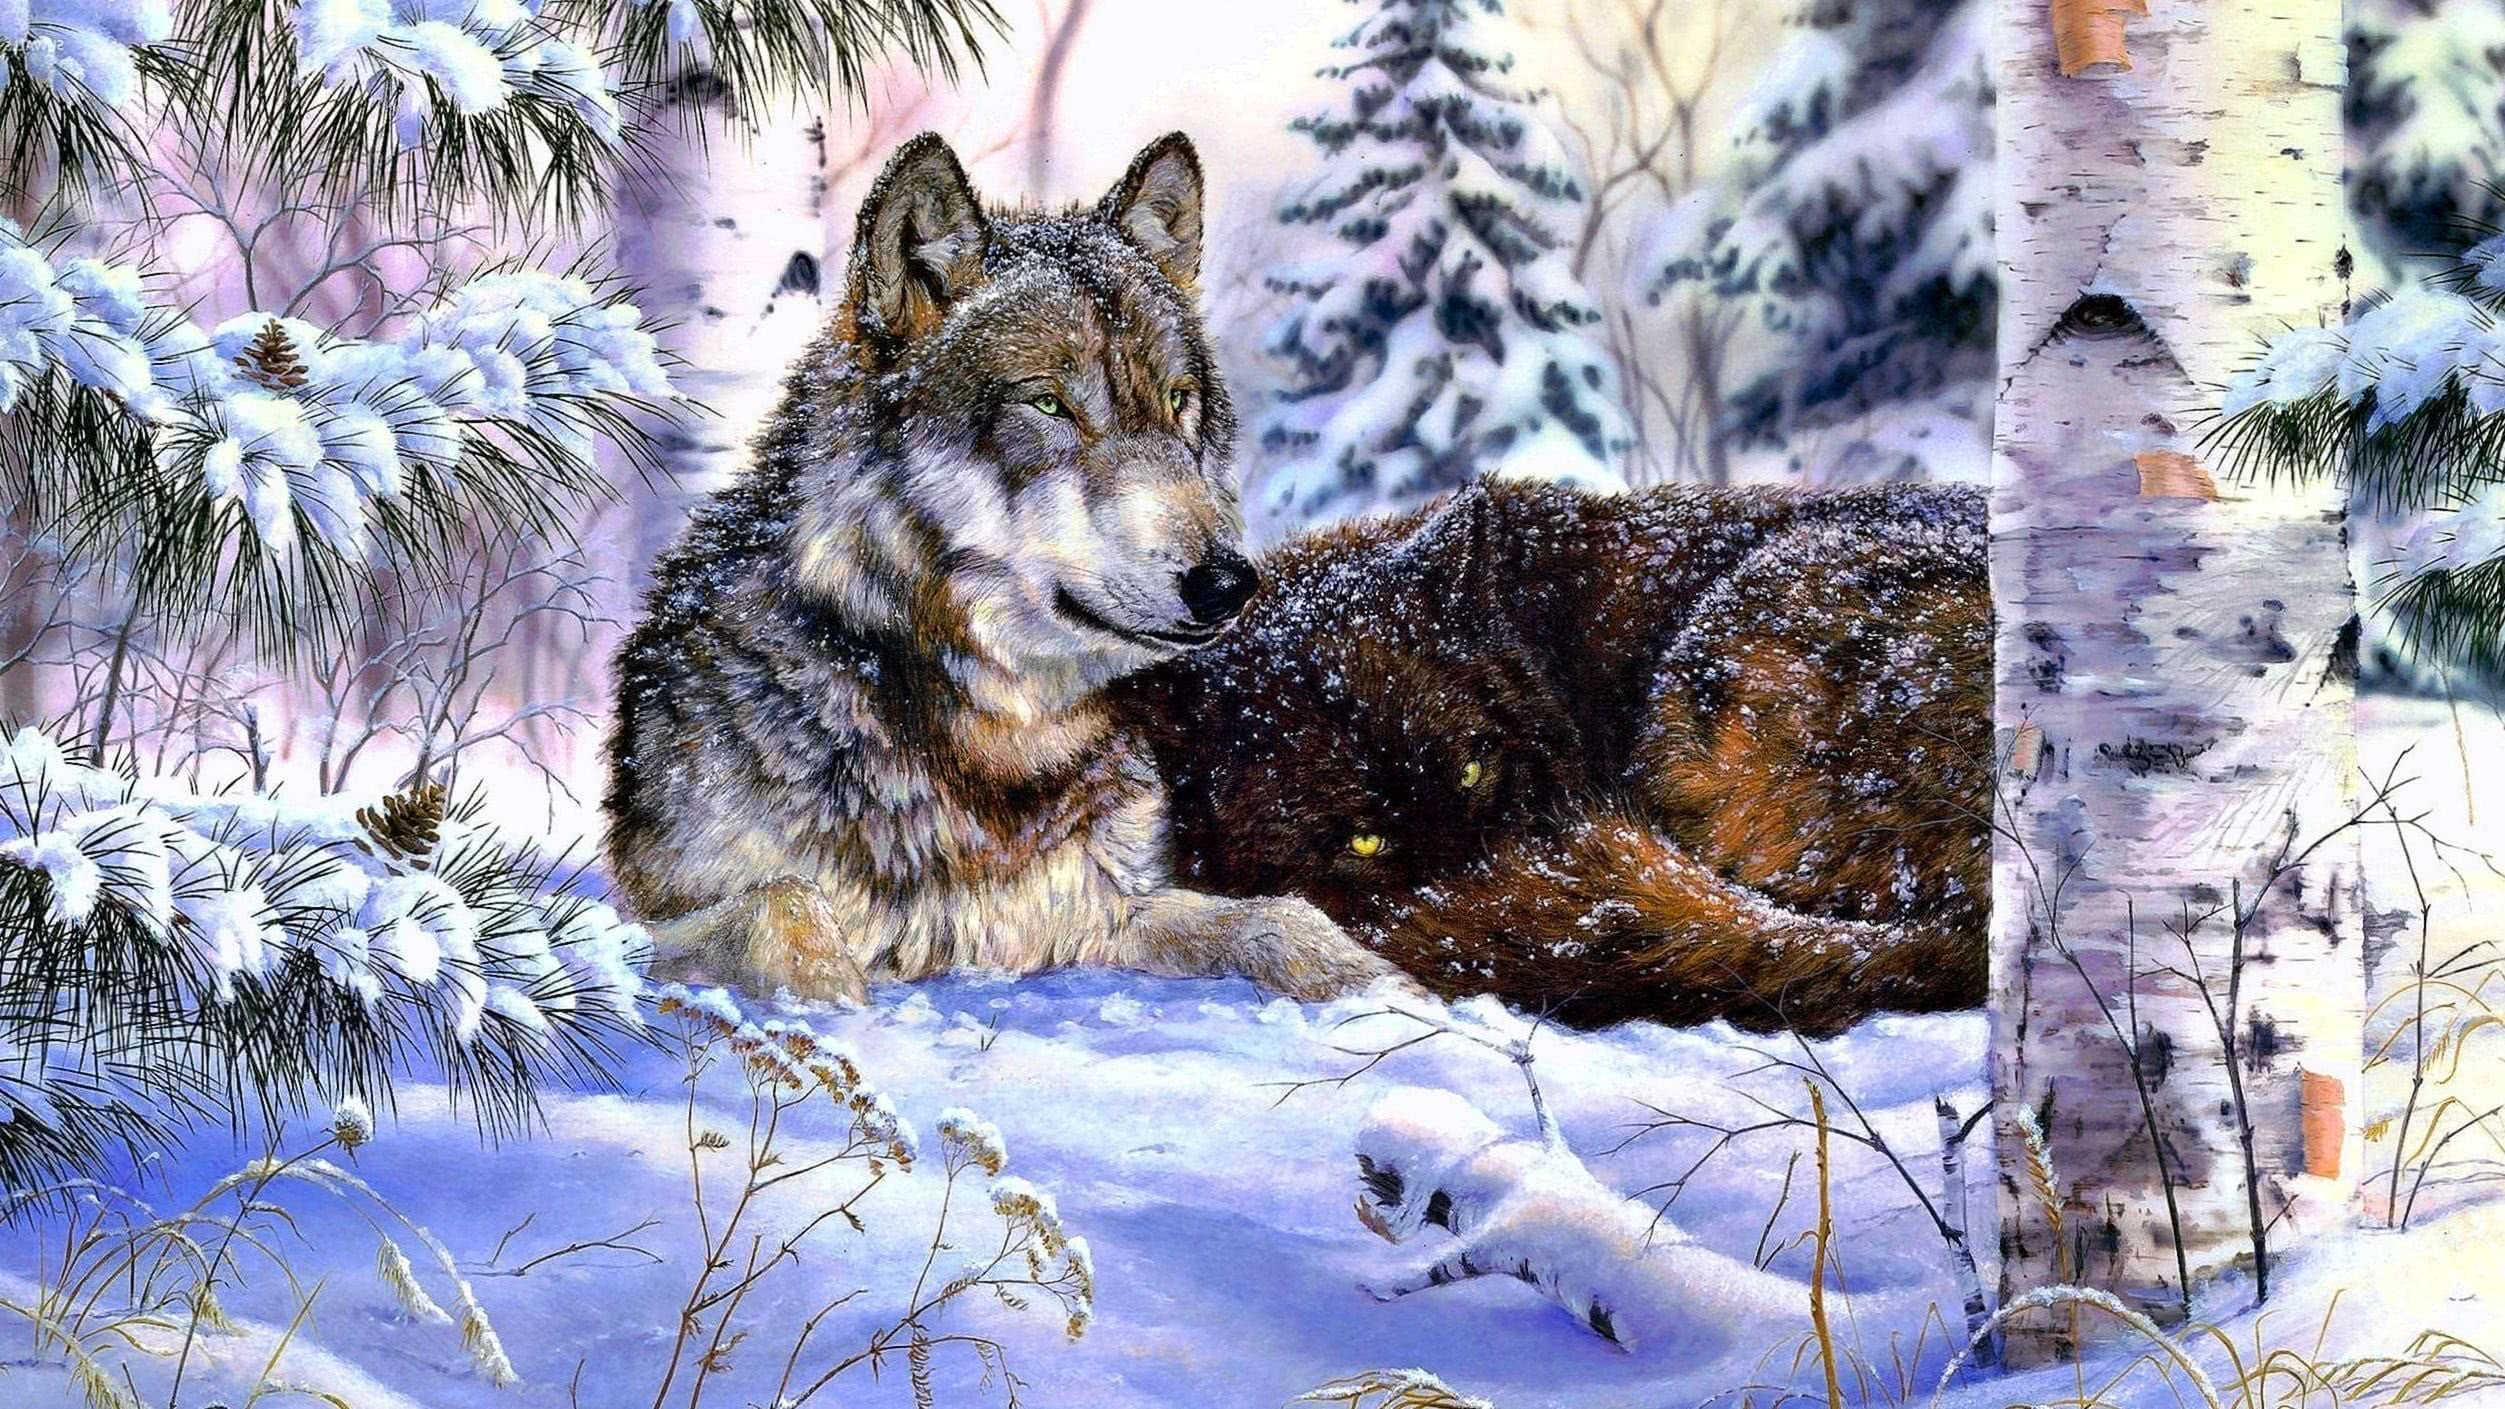 Wolves In Snow Wallpaper